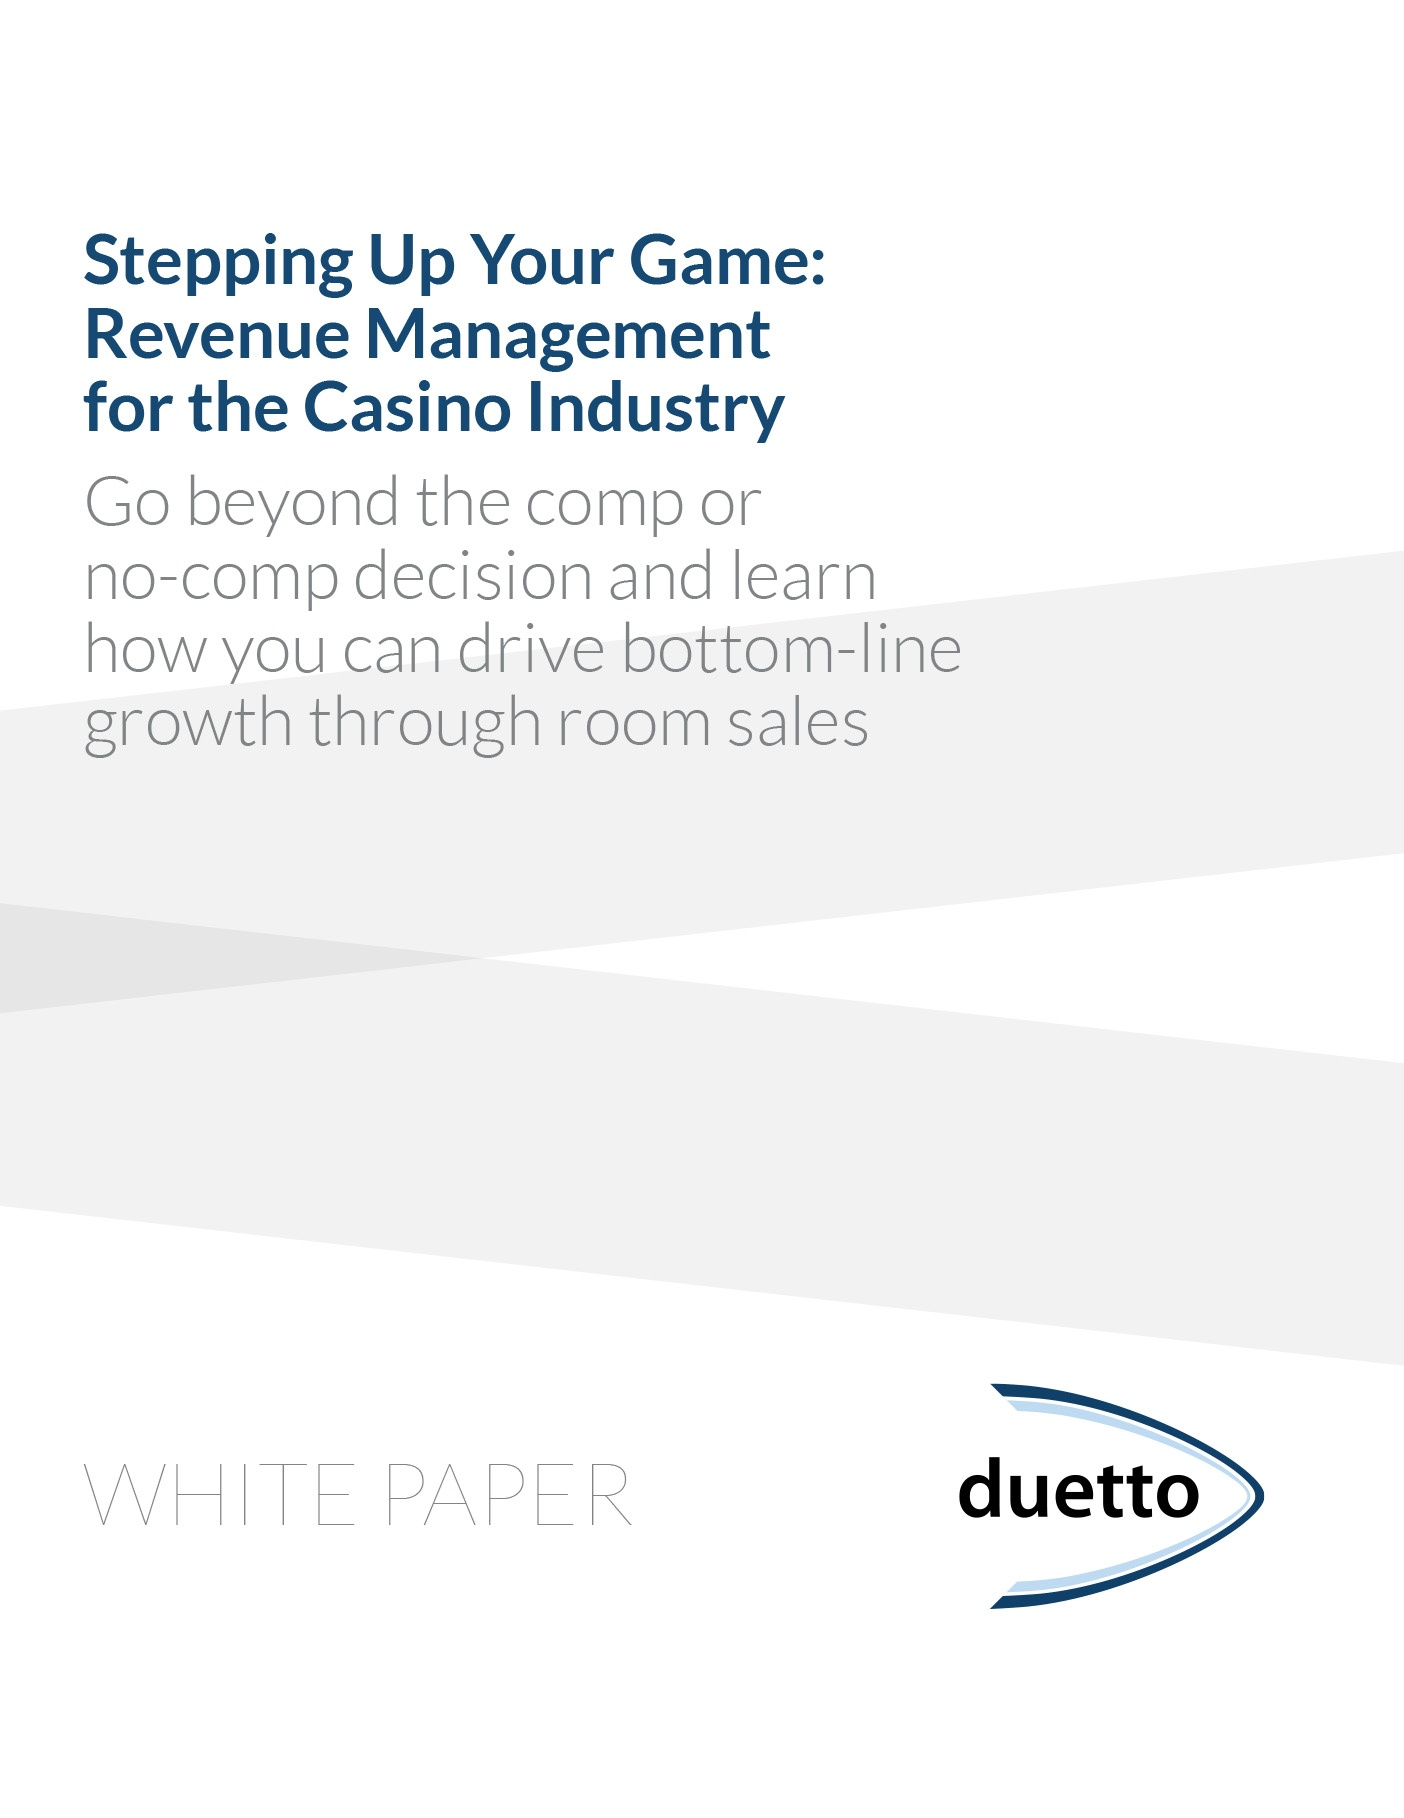 1Stepping-Up-Your-Game-Casino-Revenue-Management-1.jpg